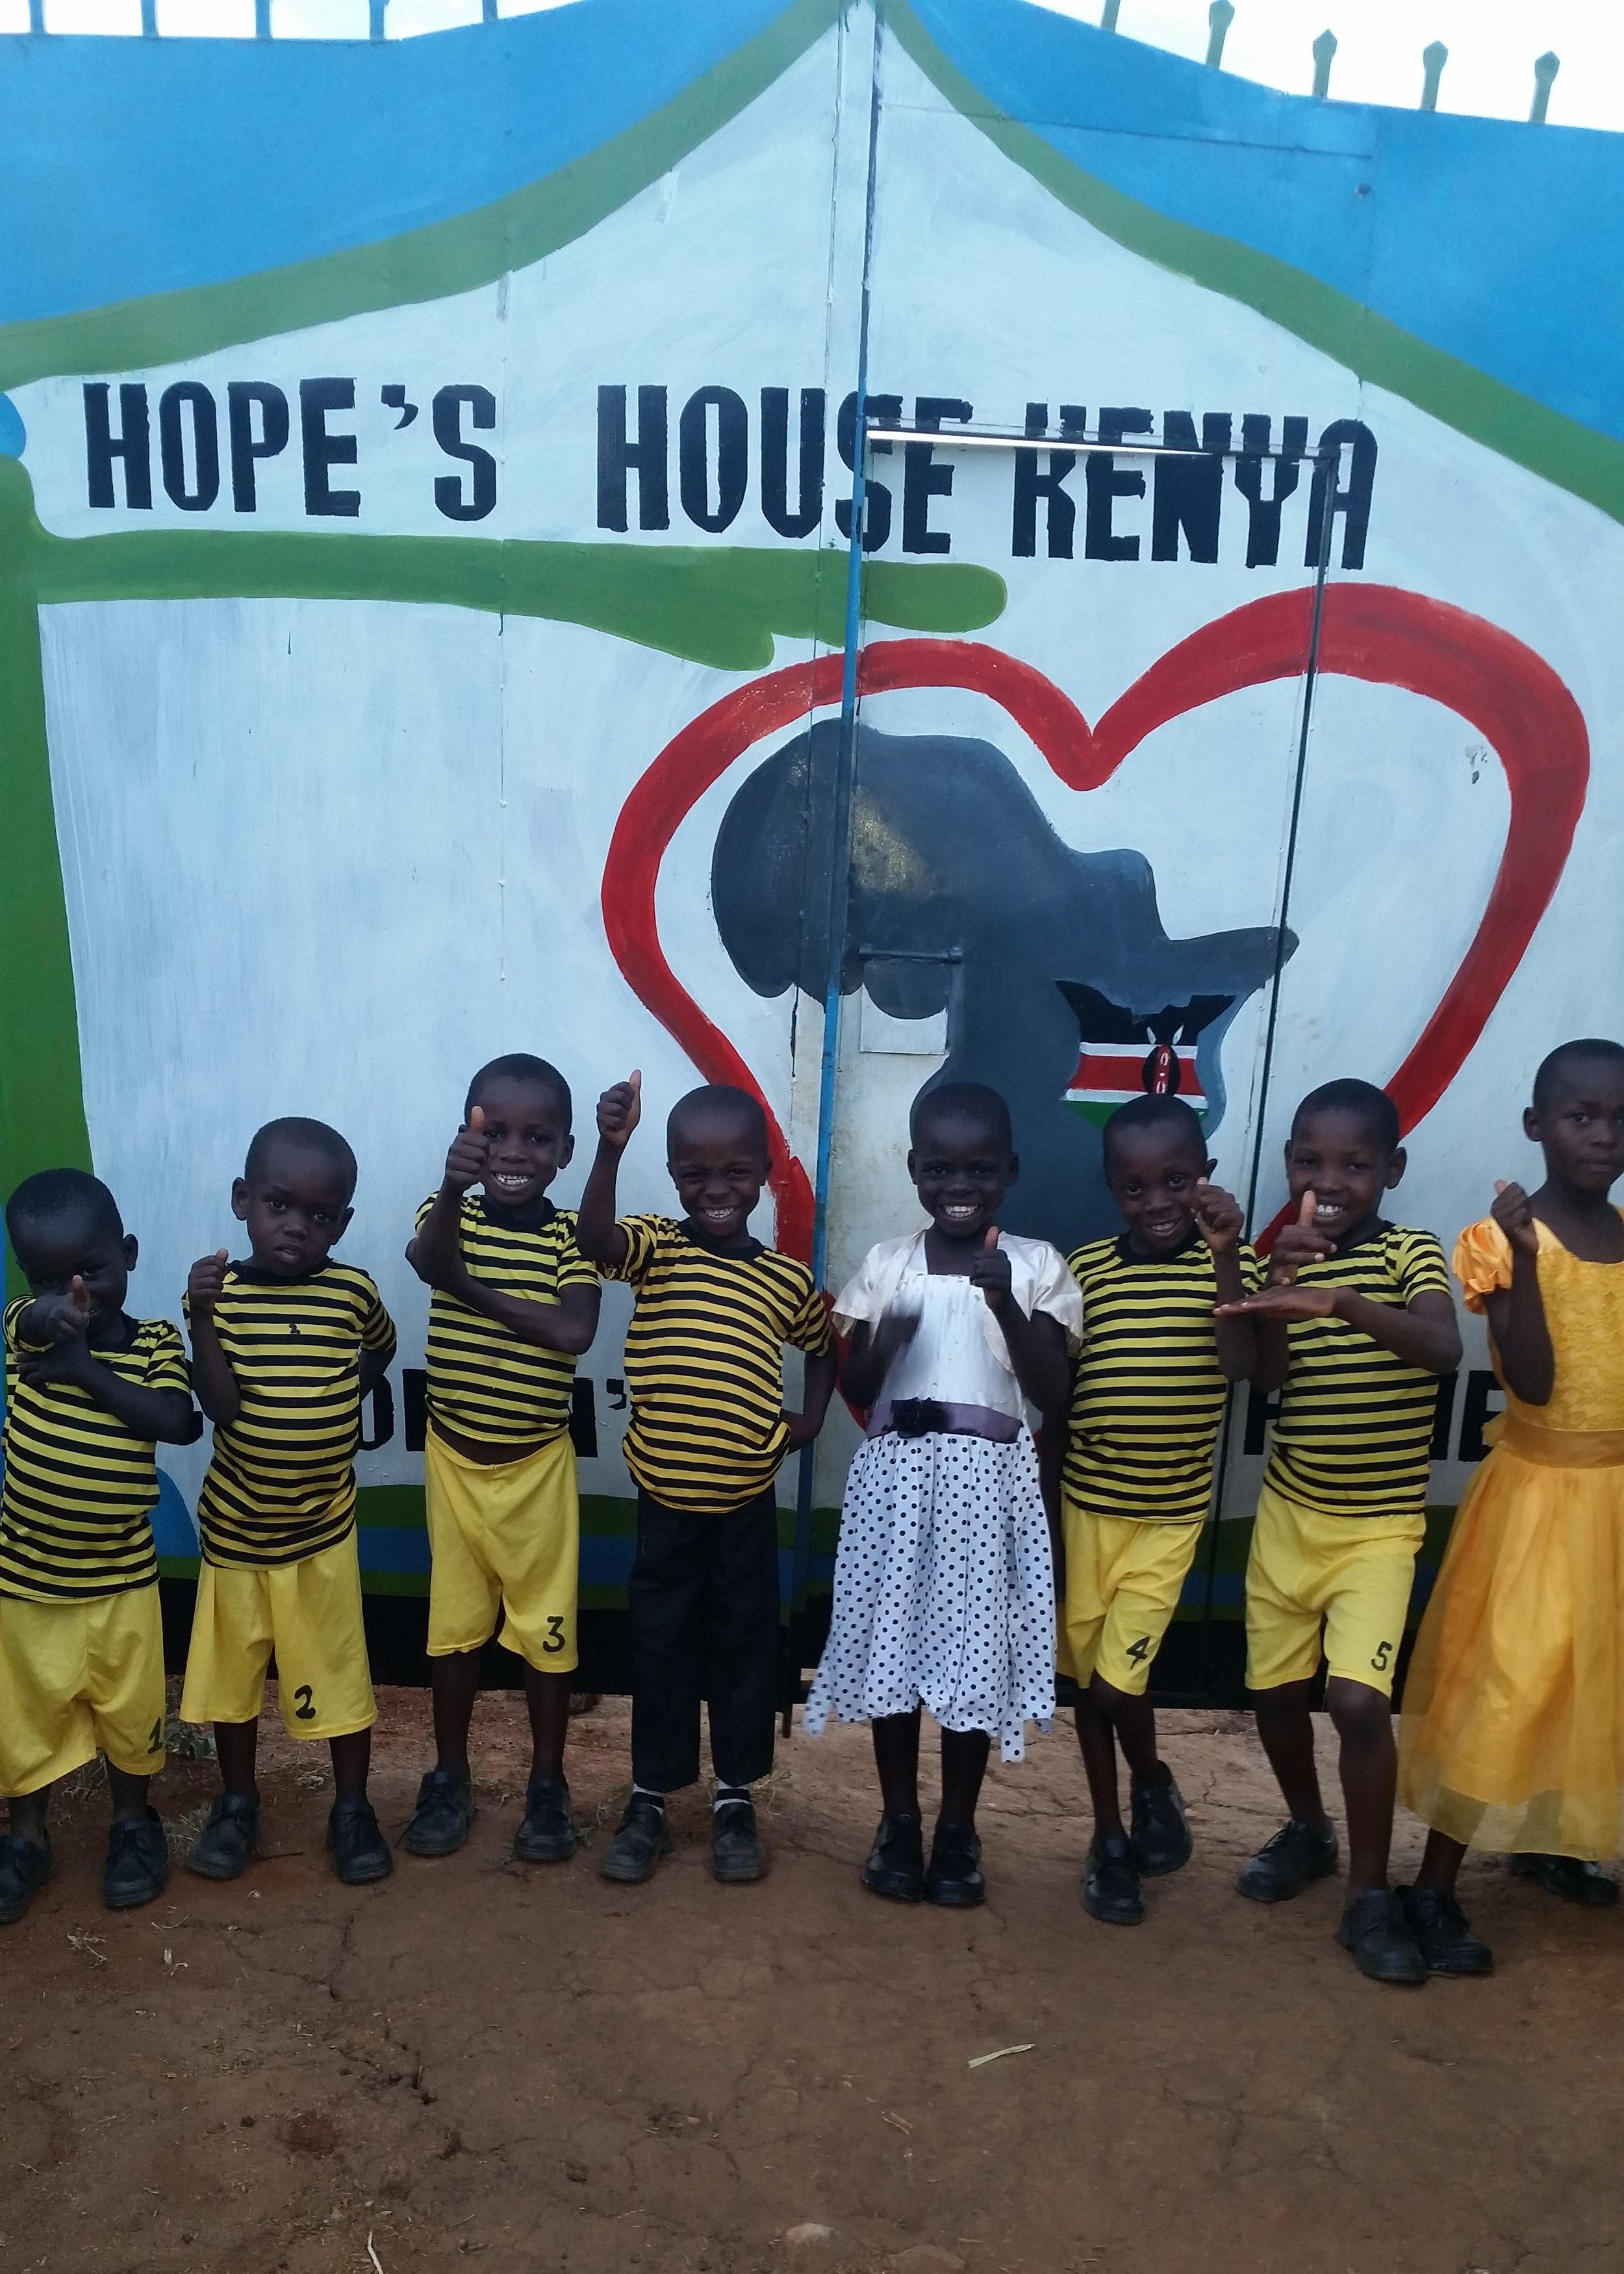 This is a photo of all 8 kids in the young children's home, just after Faith, Susan, and Samuel received the gift of HOPE and a future in their new home, along with Abel, David, John, Emmanuel, and Peter who have been a family for about 4 months. Never underestimate the power of LOVE!